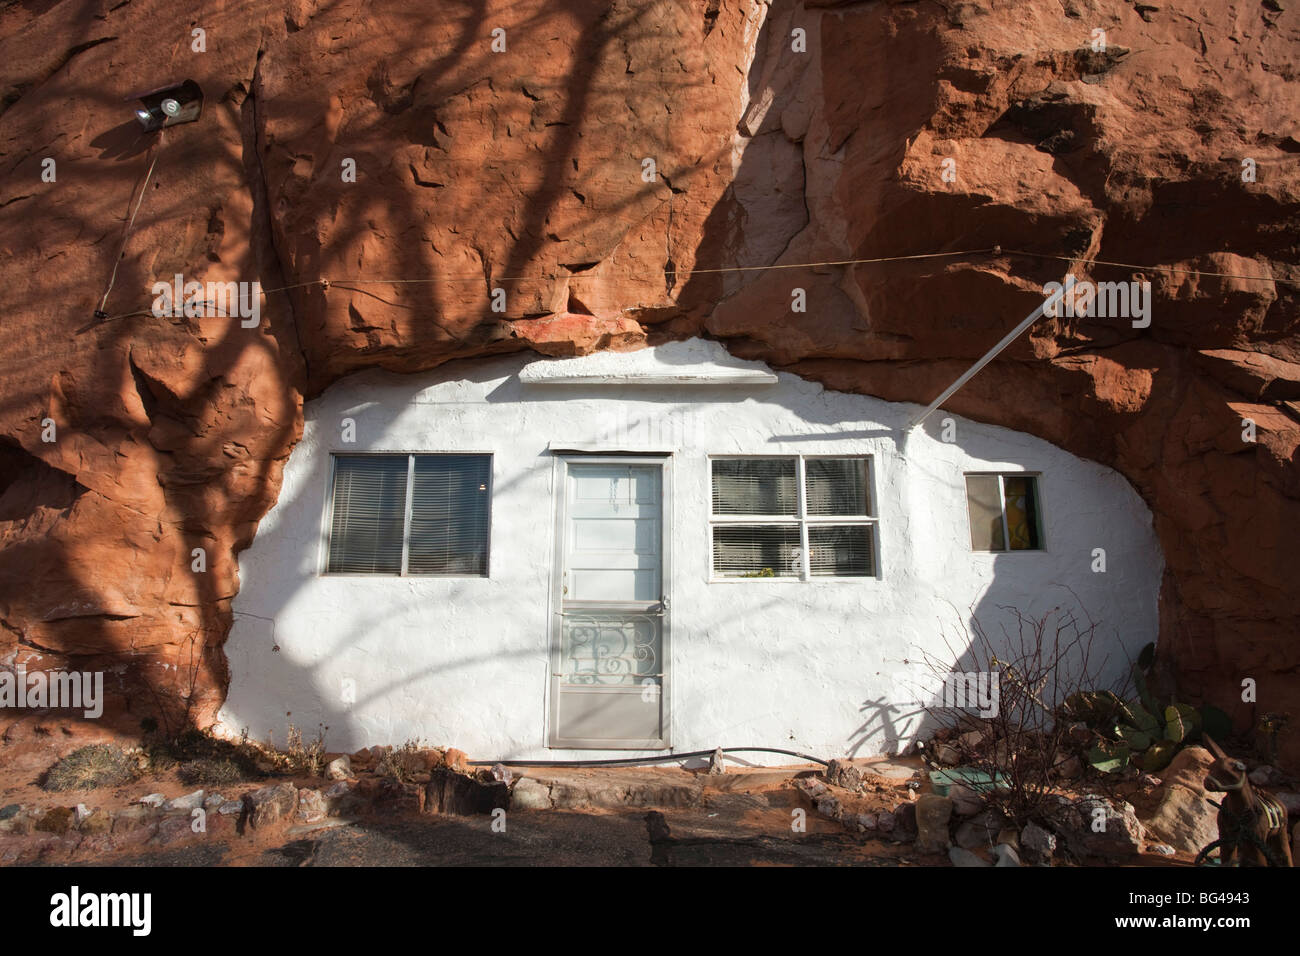 USA, Utah, Moab, Hole in the Rock tourist shop, small trailer in mountain, winter - Stock Image